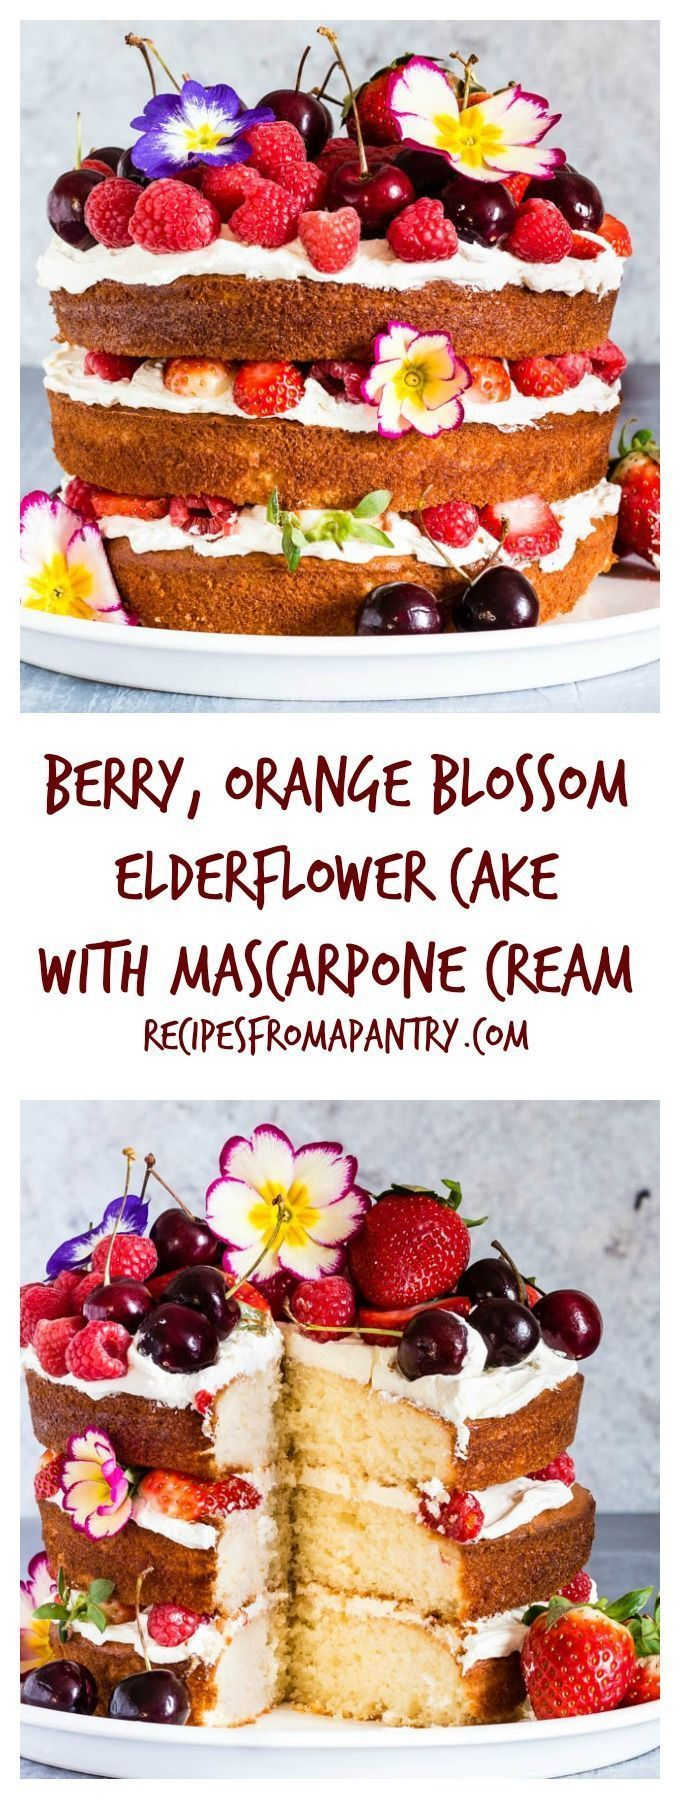 This berry, orange blossom and elderflower cake with mascarpone whipped cream is the best cake recipe ever and yields stunning results   http://recipesfromapantry.com